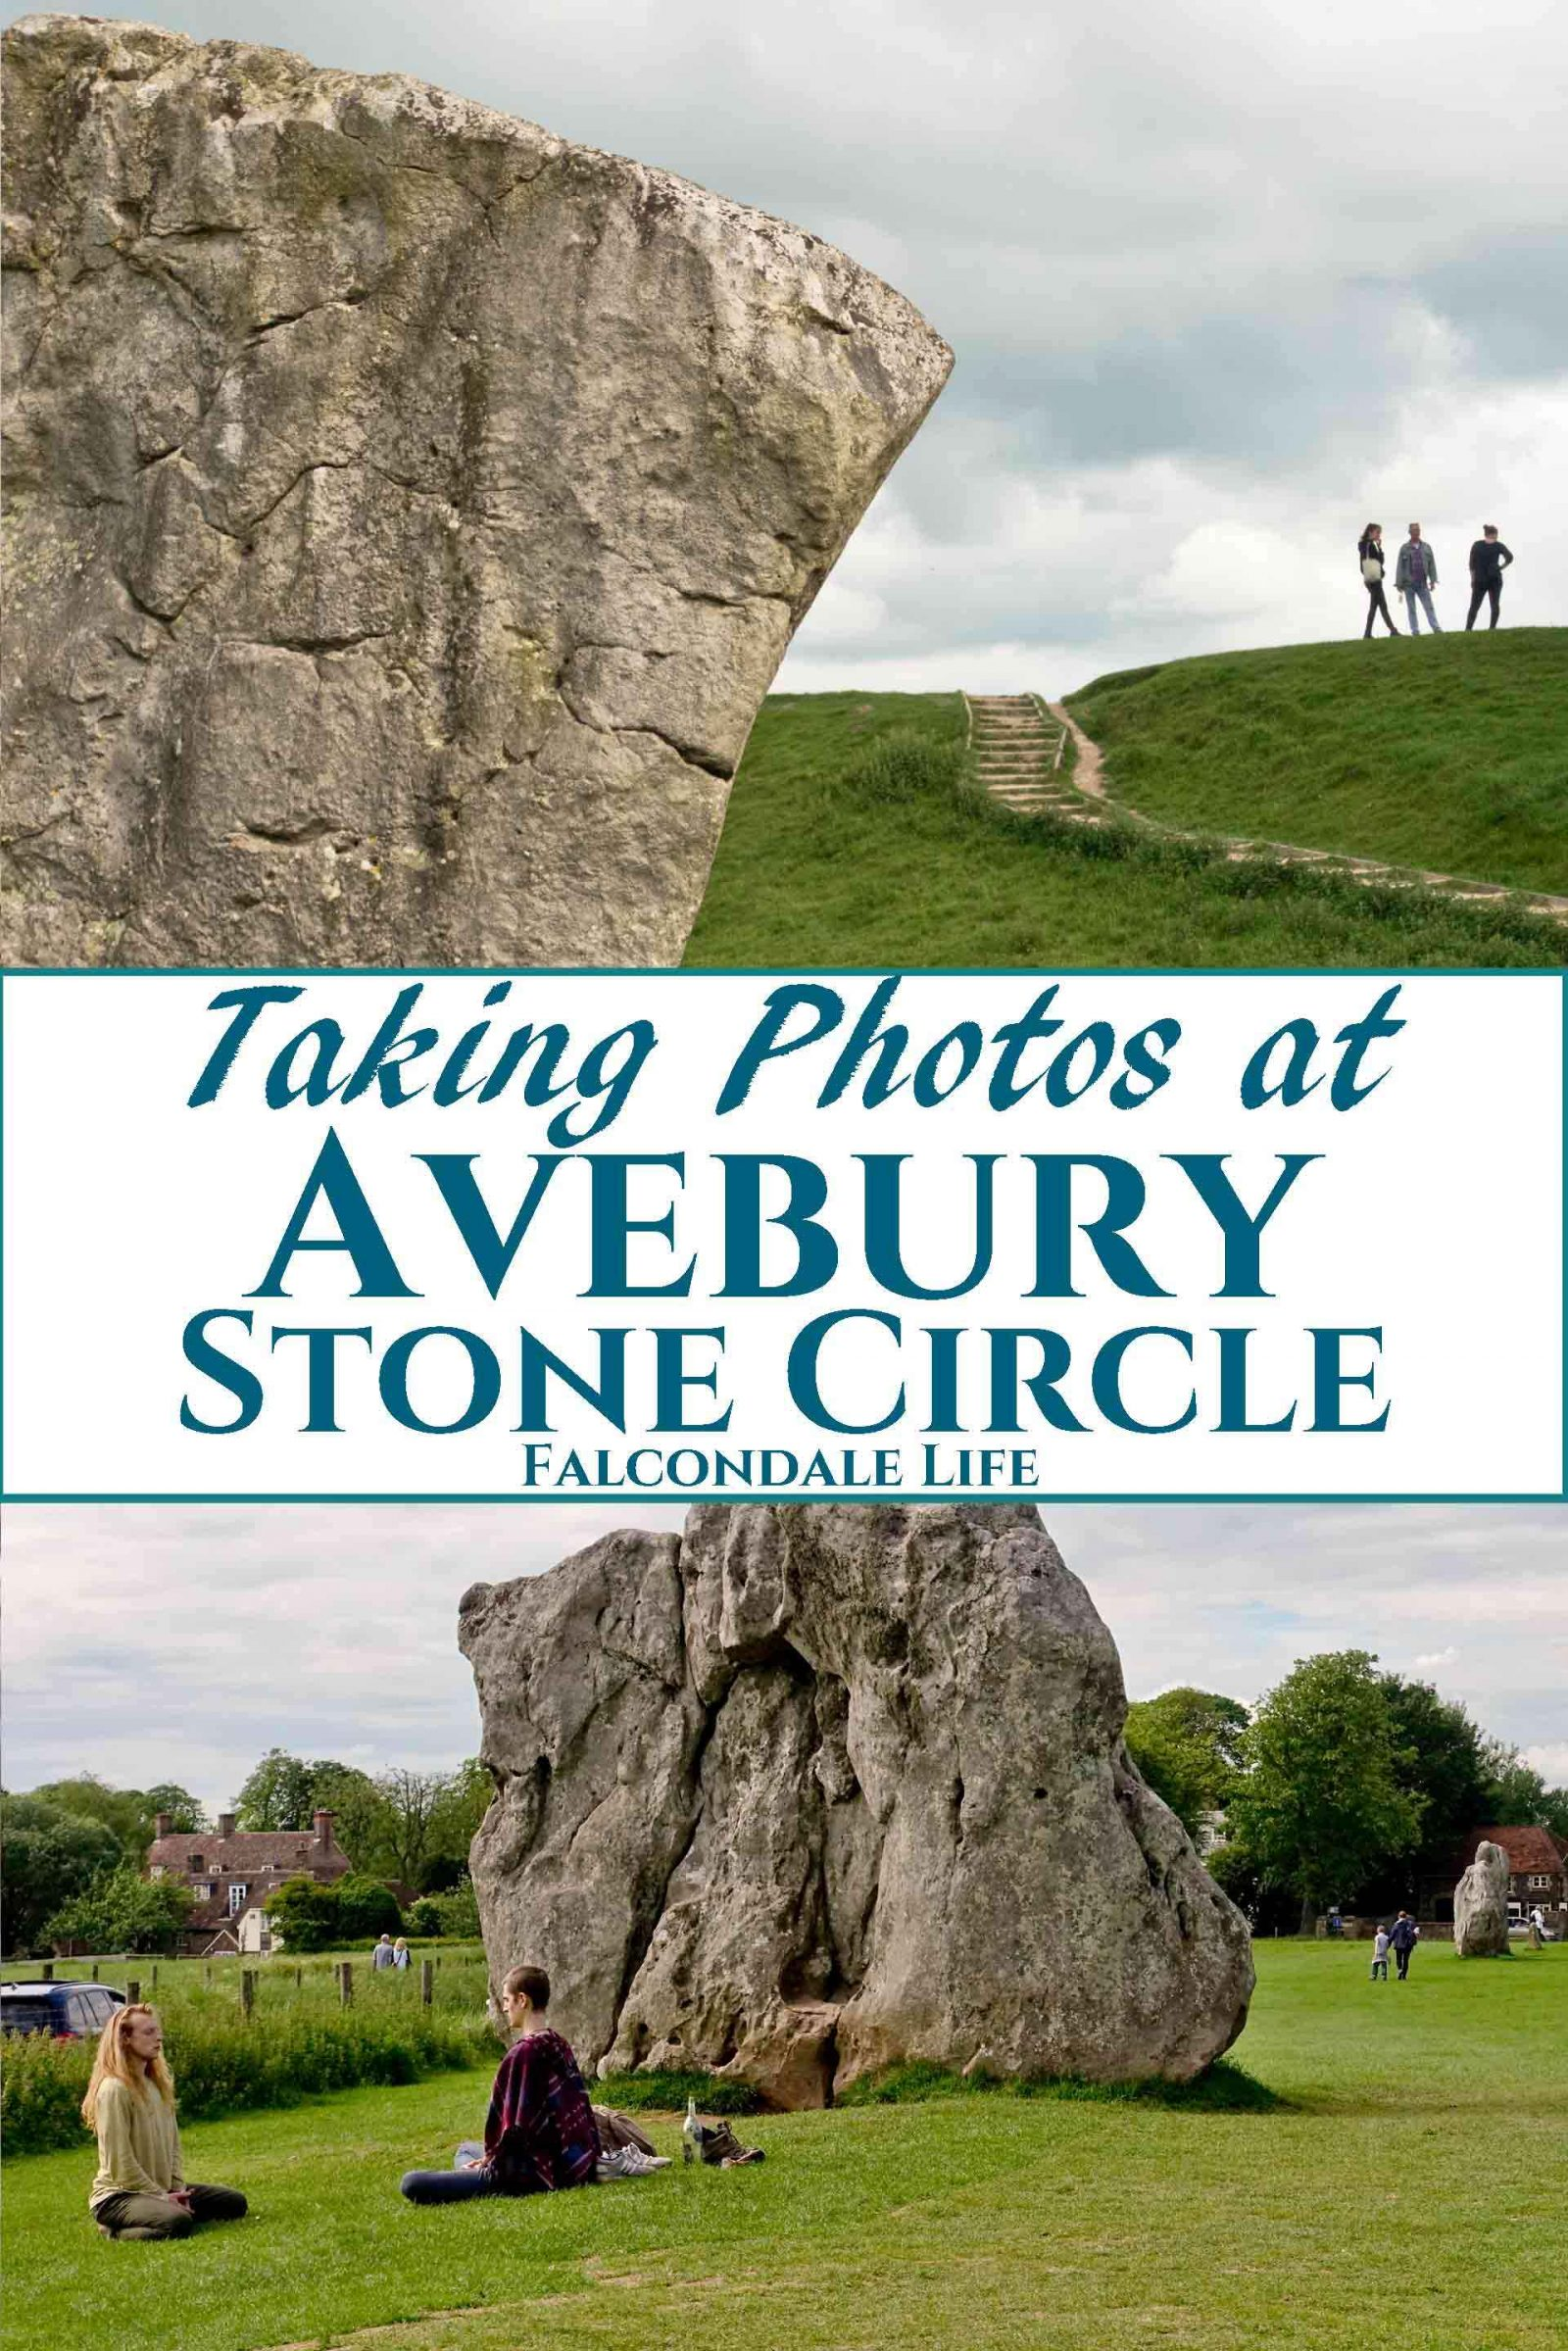 A look at how I took photos to record our visit to Avebury Stone Circle in Wiltshire. The large stoneage megaliths form an irregular henge throughout a modern village and so it can't all be viewed at once. Travel photography tips and ideas. Taking Photos at Avebury Stone Circle on Falcondale Life blog. Image description: Two photos of Avebury megaliths and blog title.